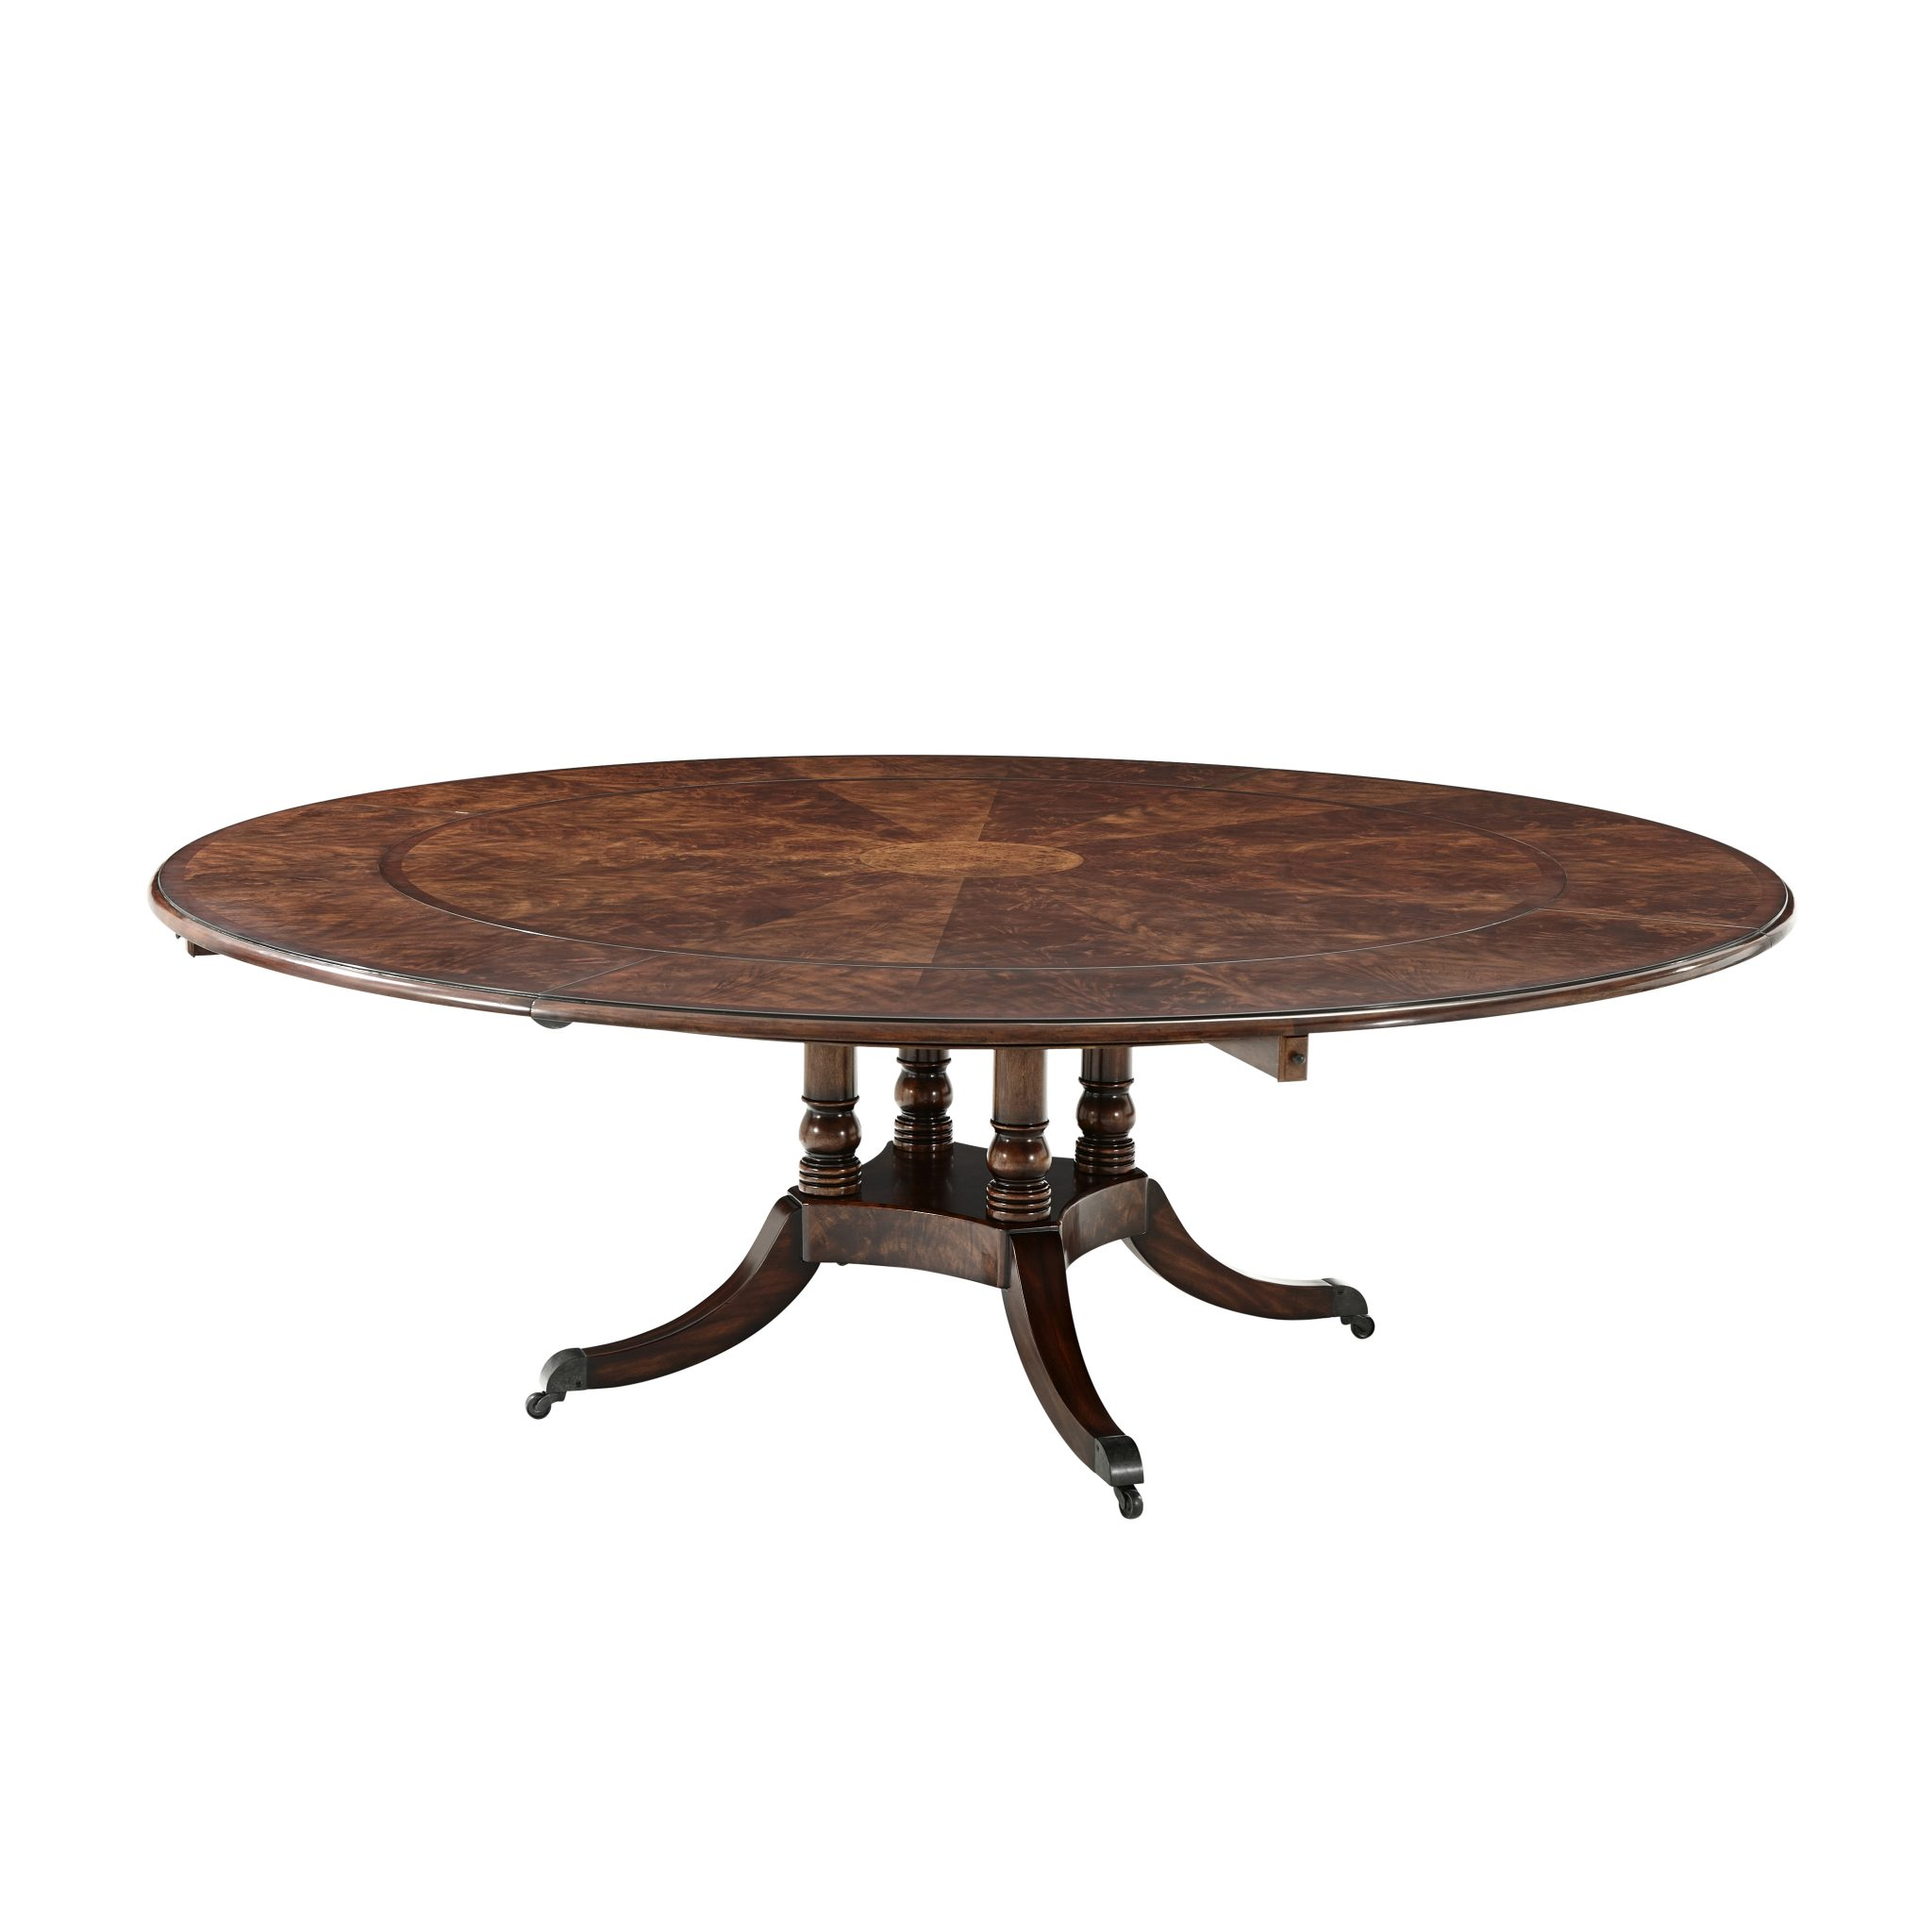 Reproduction Dining Tables Image collections Dining  : 25008 reproduction large circular dining table 1 from sorahana.info size 4104 x 4104 jpeg 2640kB